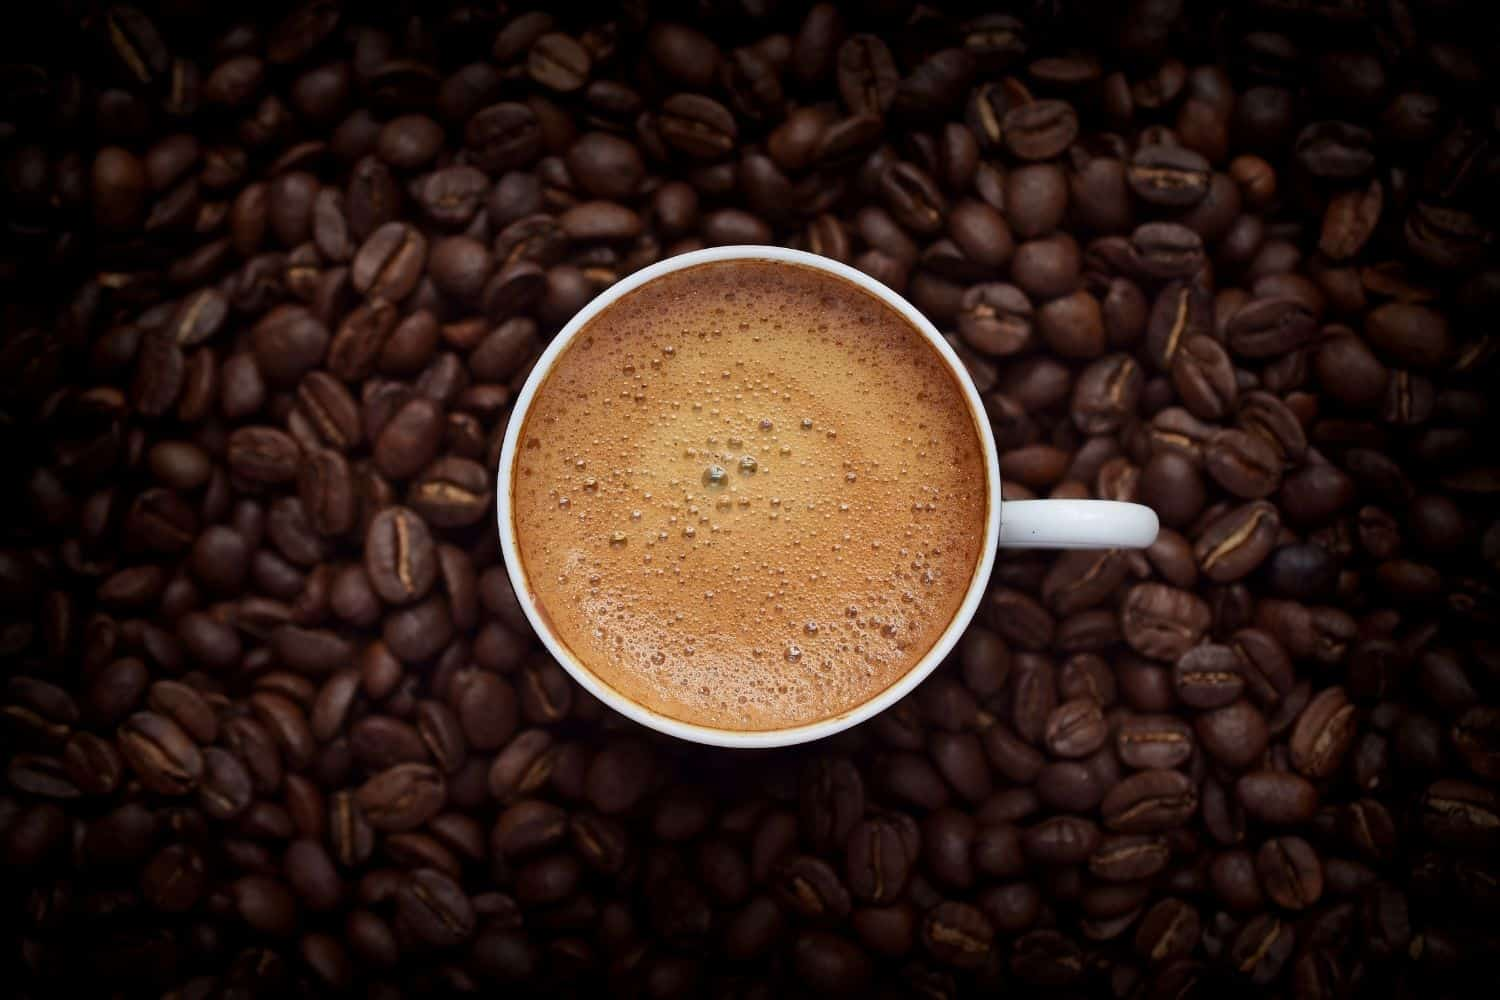 does coffee have tannins?